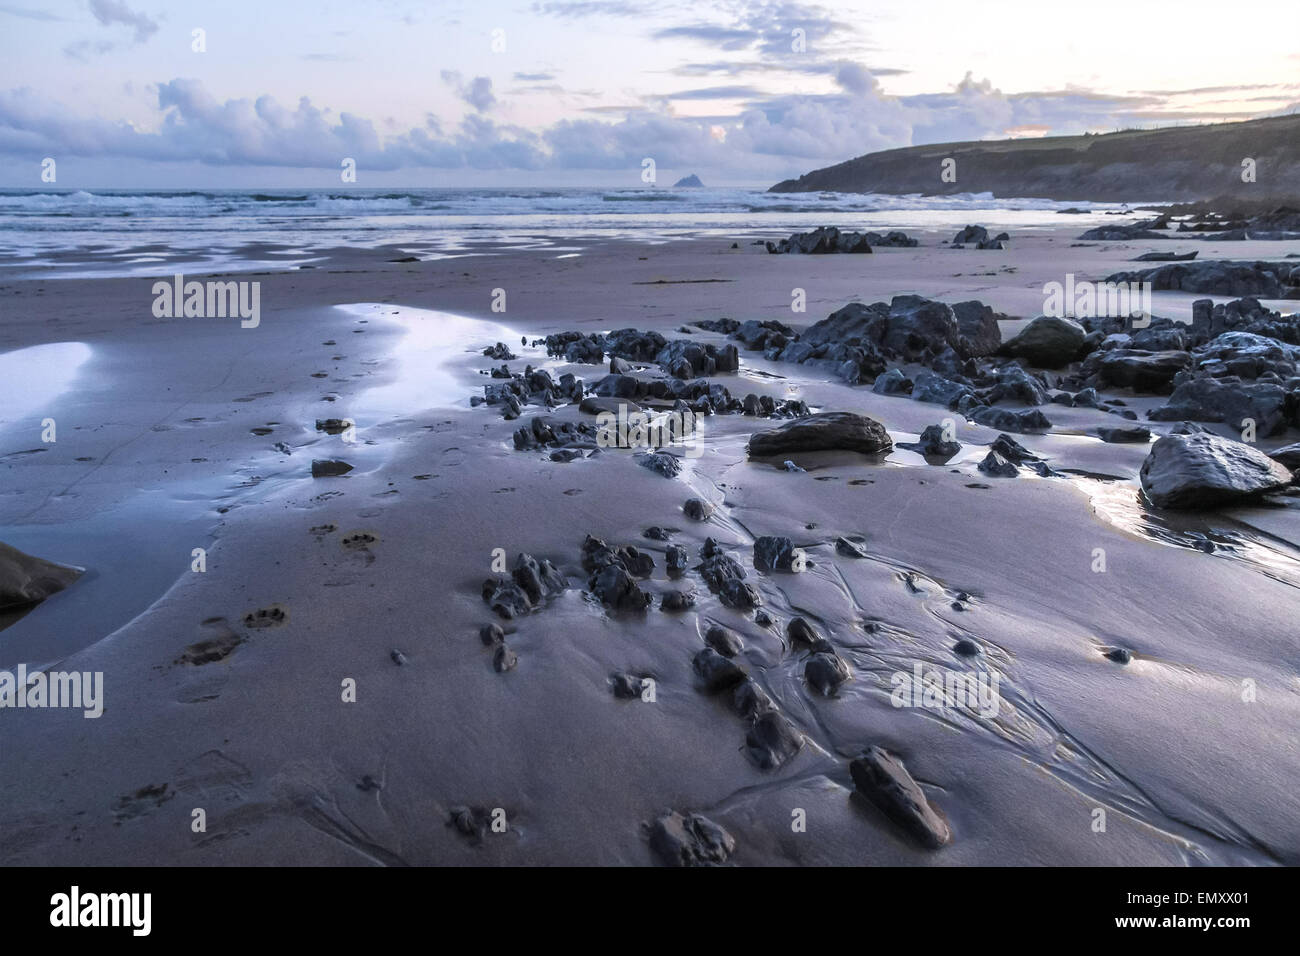 Stones on the beach in bad weather, County Kerry, Ireland - Stock Image